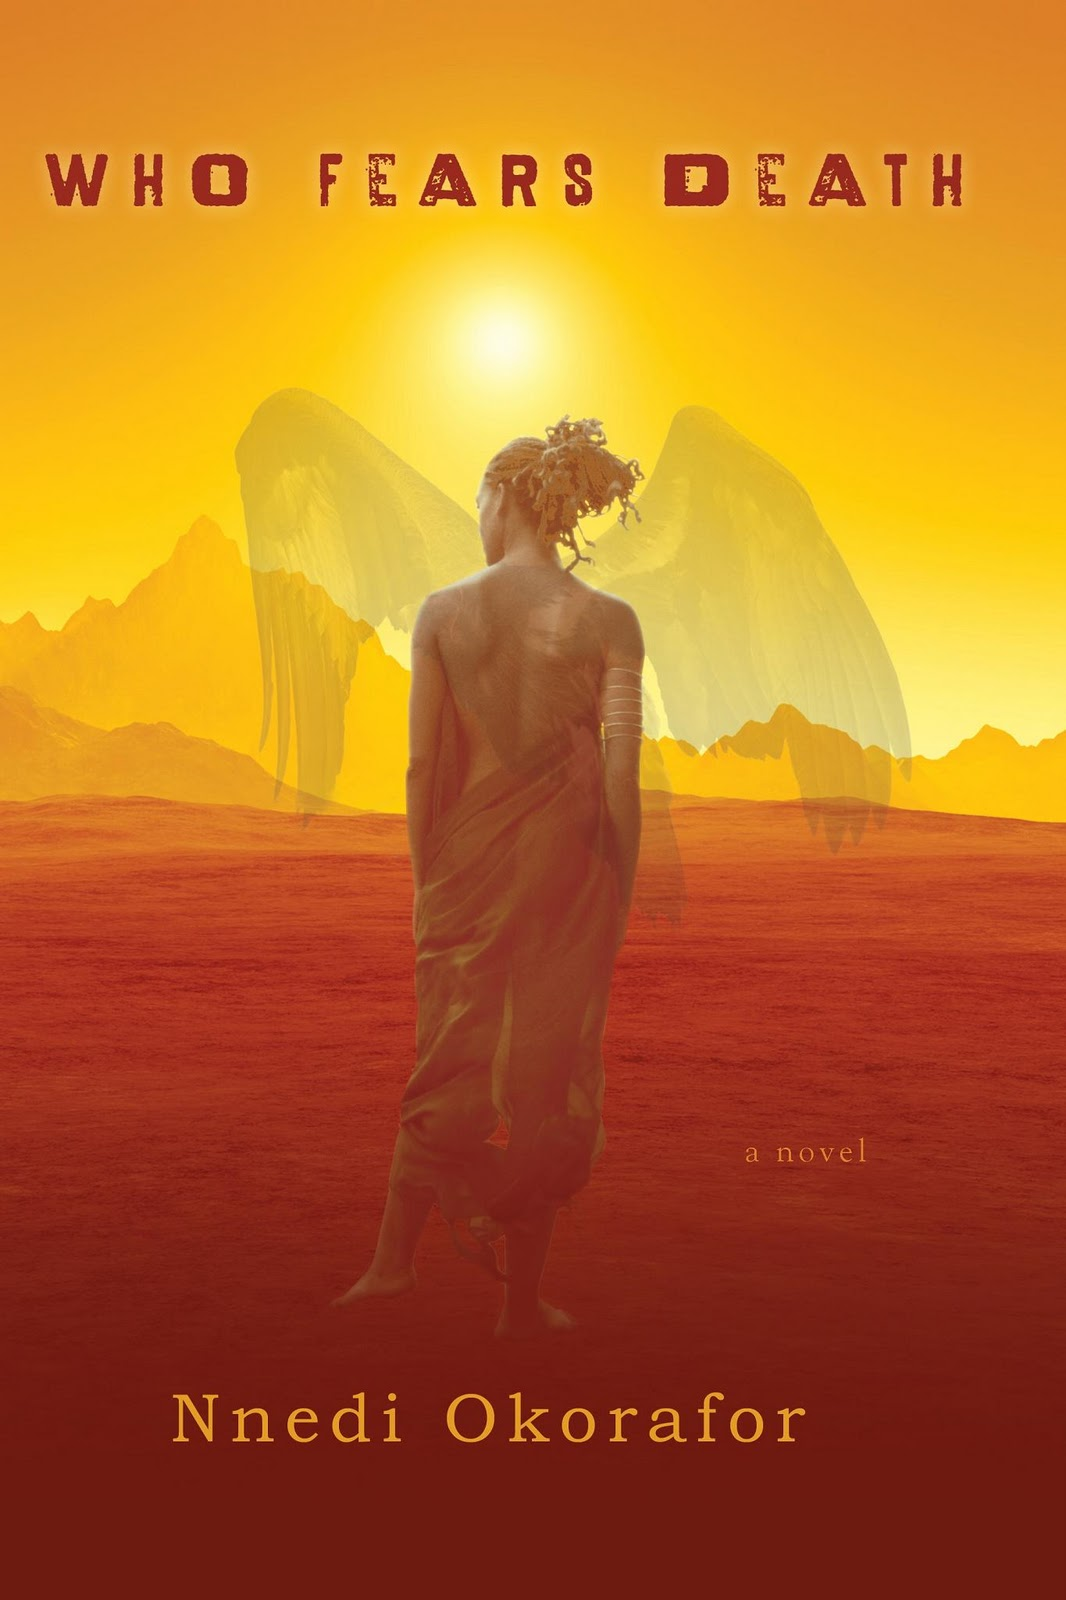 Dear Thursday: WHO FEARS DEATH by Nnedi Okorafor [Book 33 of 2010]